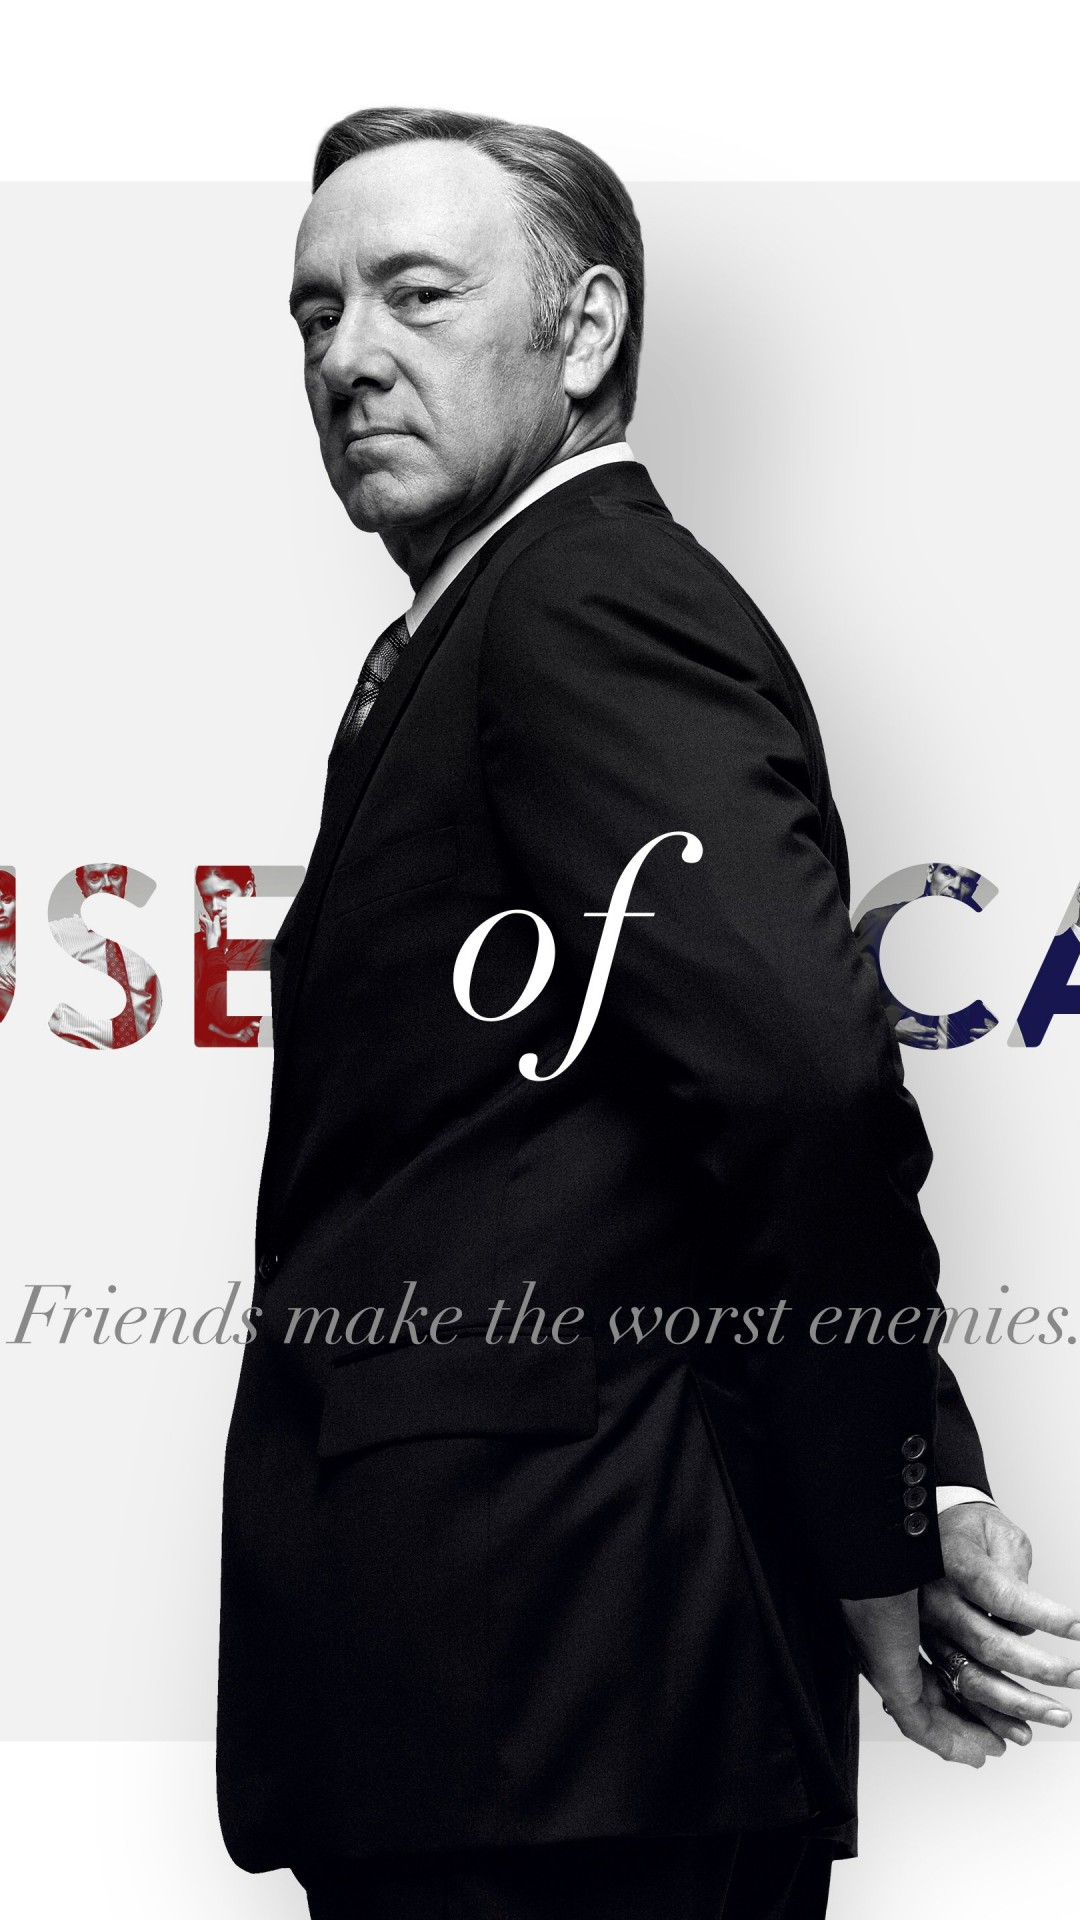 Frank Underwood - House of Cards Wallpaper for Motorola Moto X